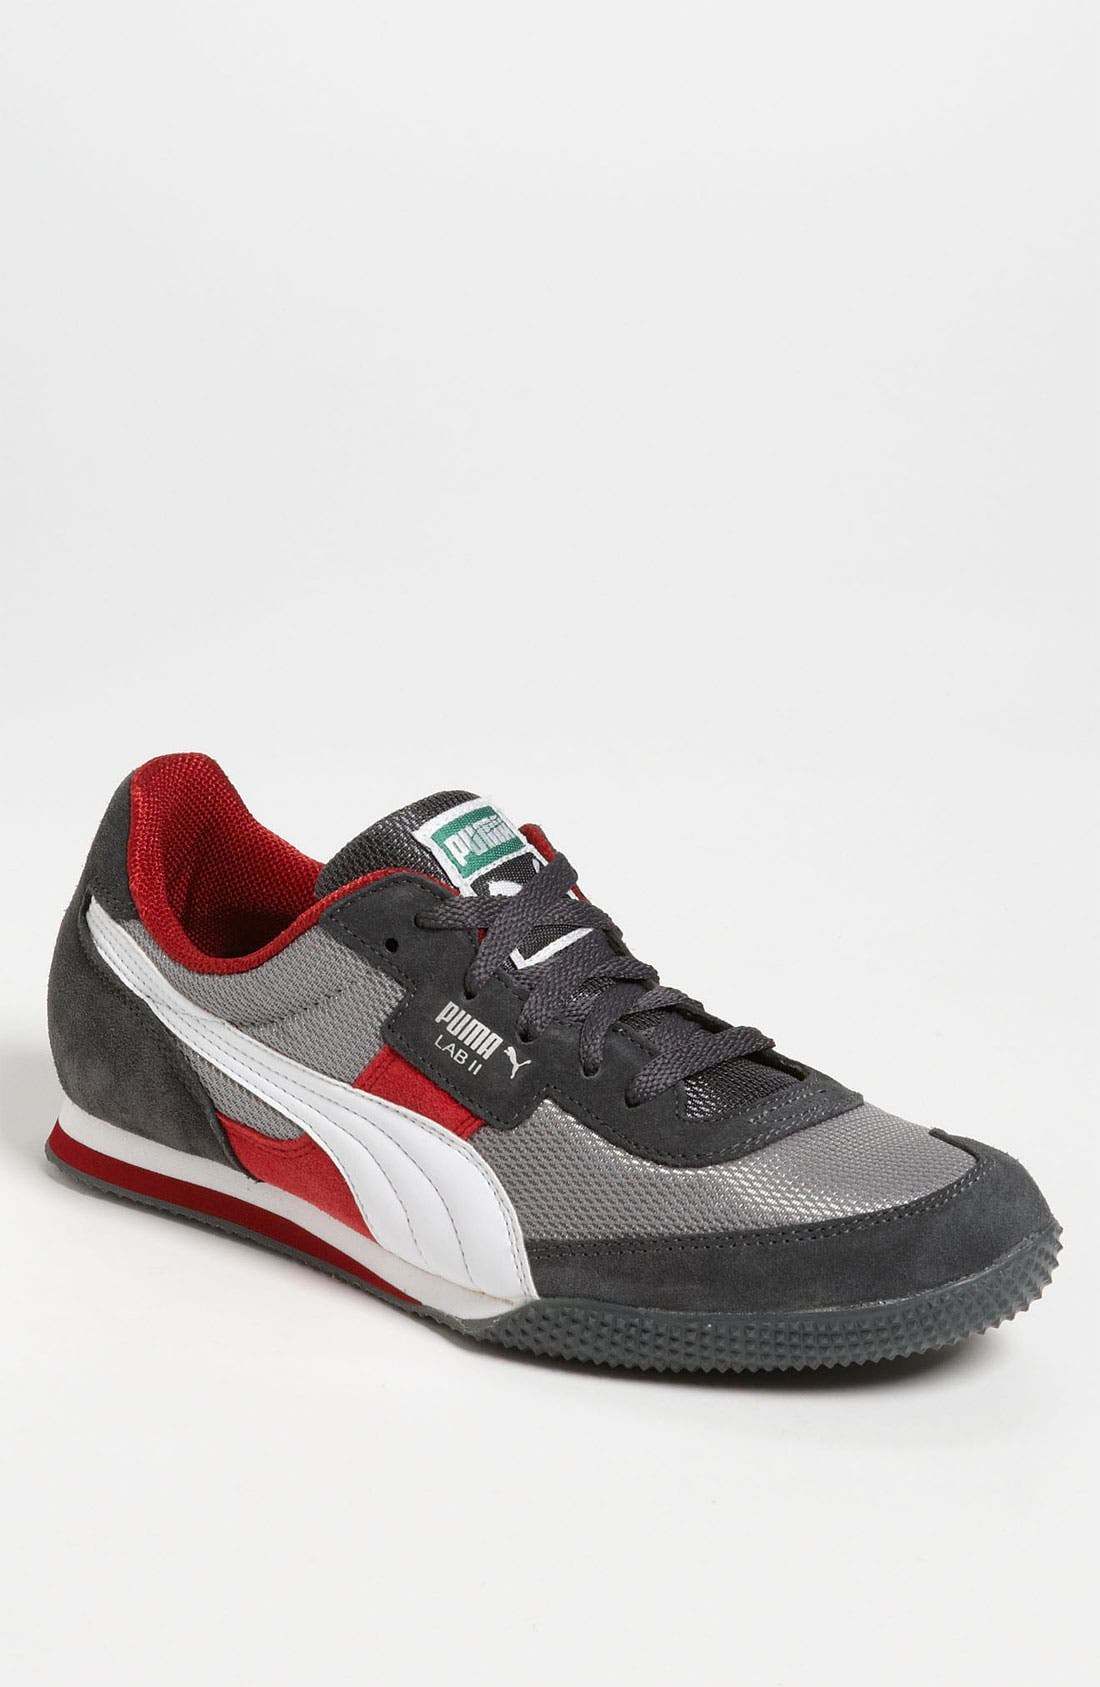 Main Image - PUMA 'Lab II FB' Sneaker (Men)